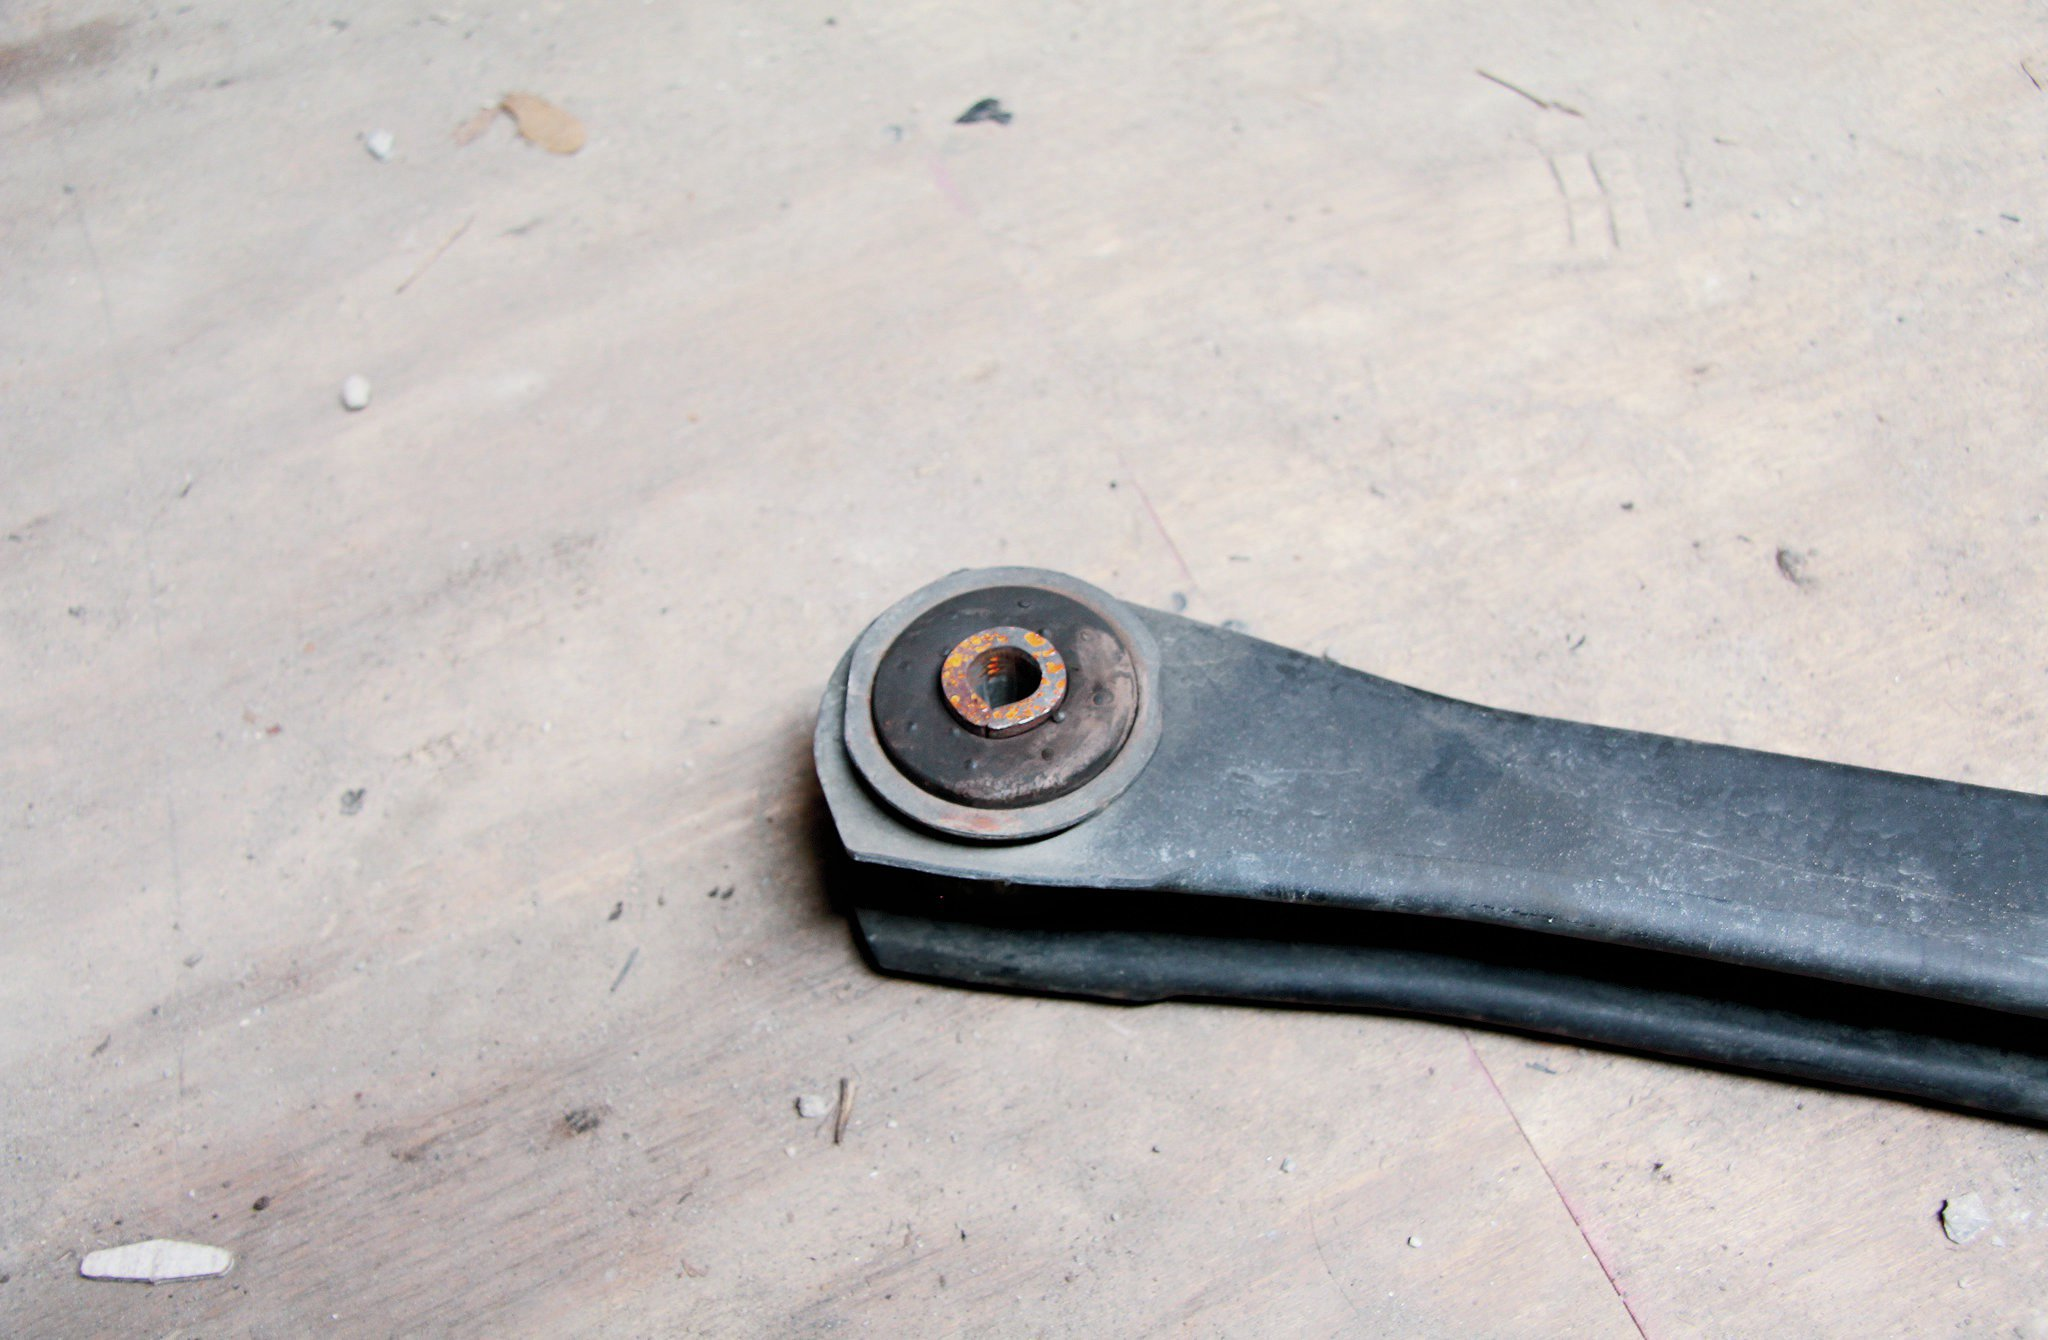 The rubber bushings on the TJ's stock control arms are actually incredibly durable. If the Jeep is stock, chances are they are probably fine. We've actually seen more rapid joint failure with cheap poly bushings (common on budget lift kits). Basic suspension neglect can cause an otherwise solid Jeep to drive and sound terrible. Suspension joints and even complete systems are pretty inexpensive these days for the TJ. Use the previous owner's neglect to make your dollar go farther.